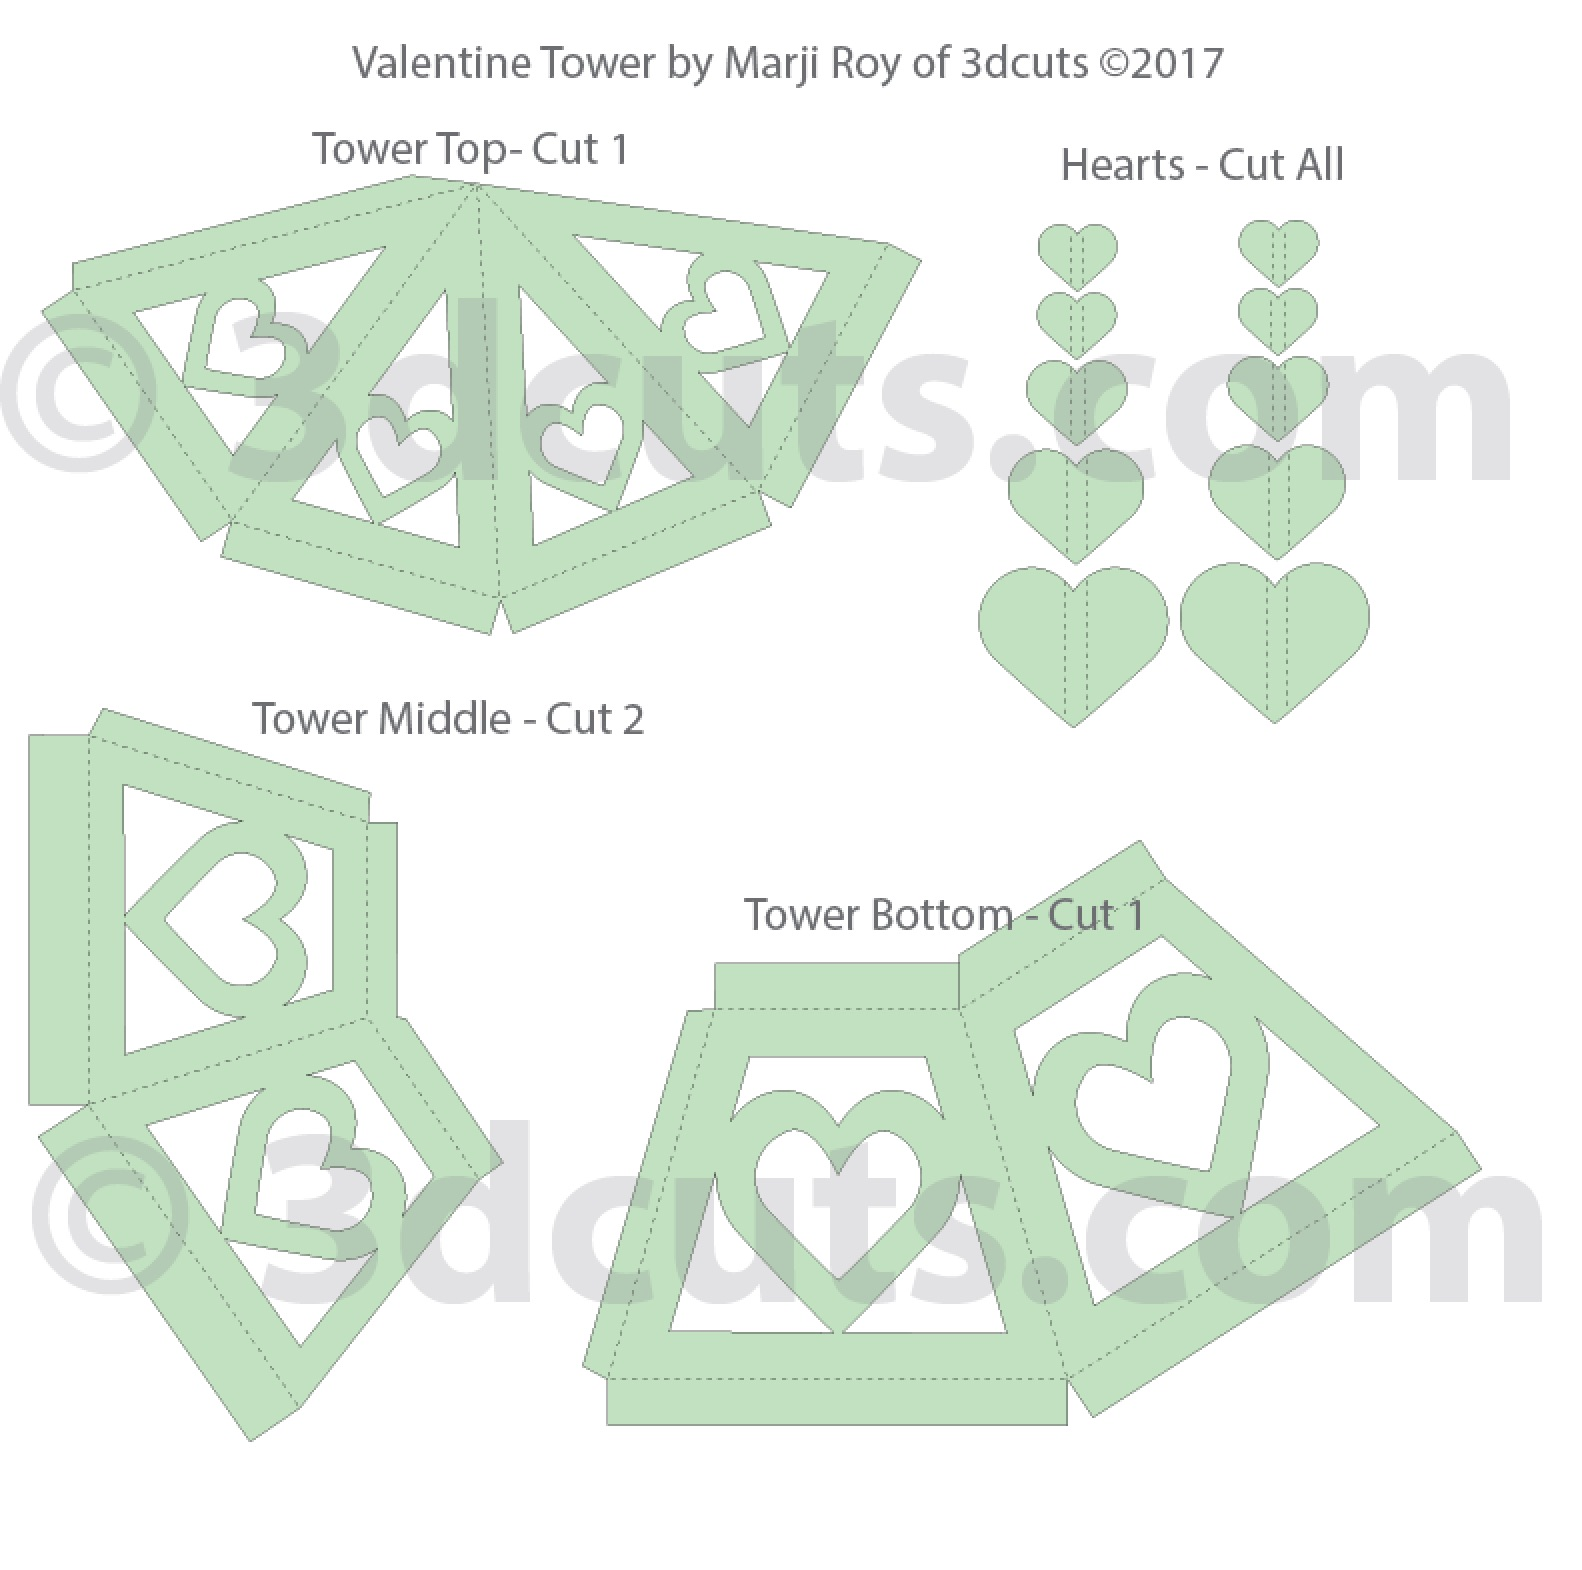 3d Valentine Tower cutting files in SVG, pdf, png, and dxf formats. Designed by Marji Roy of 3dcuts.com for Silhouette, Cricut and other cutting machines. ©2017 Marji Roy. All rights reserved